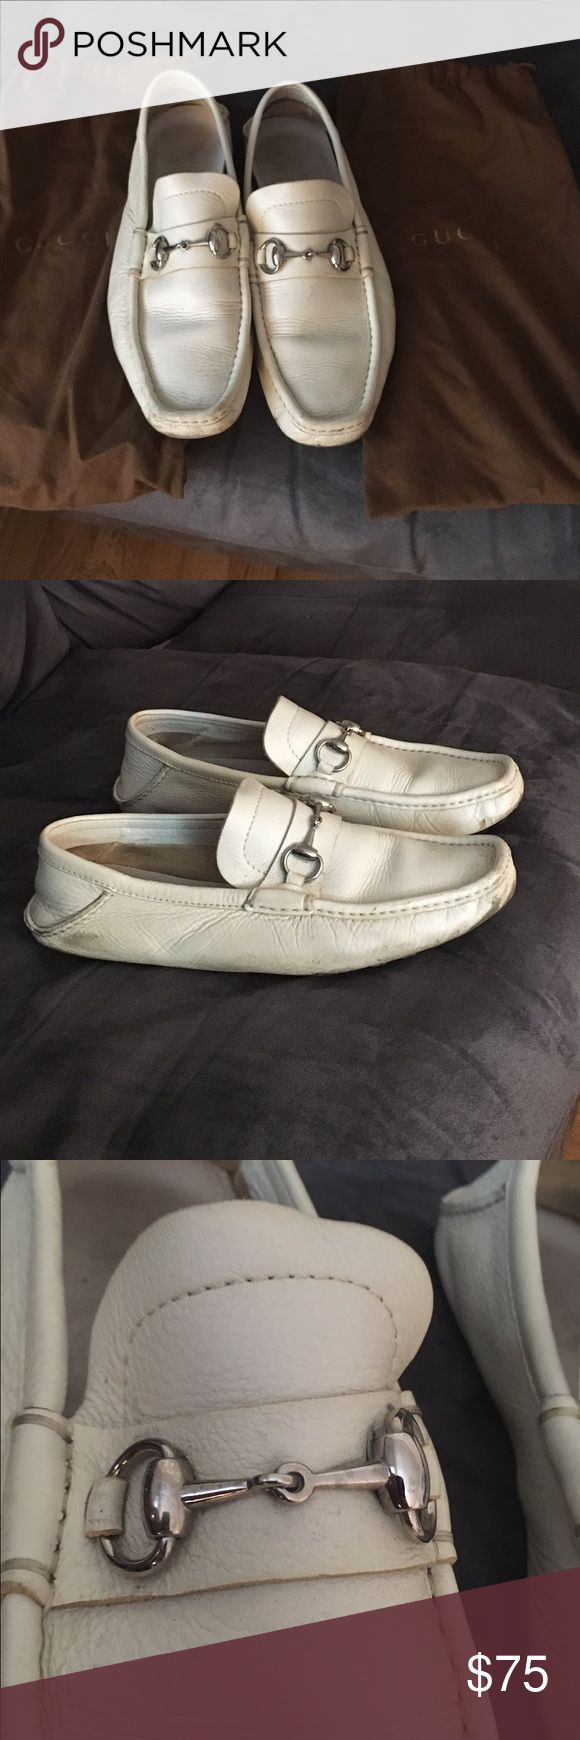 Gucci Men's White Loafers Gucci Men's White Leather Loafers. Size: 42 Europe / 9 US. Purchased in Italy. Gucci Shoes Loafers & Slip-Ons